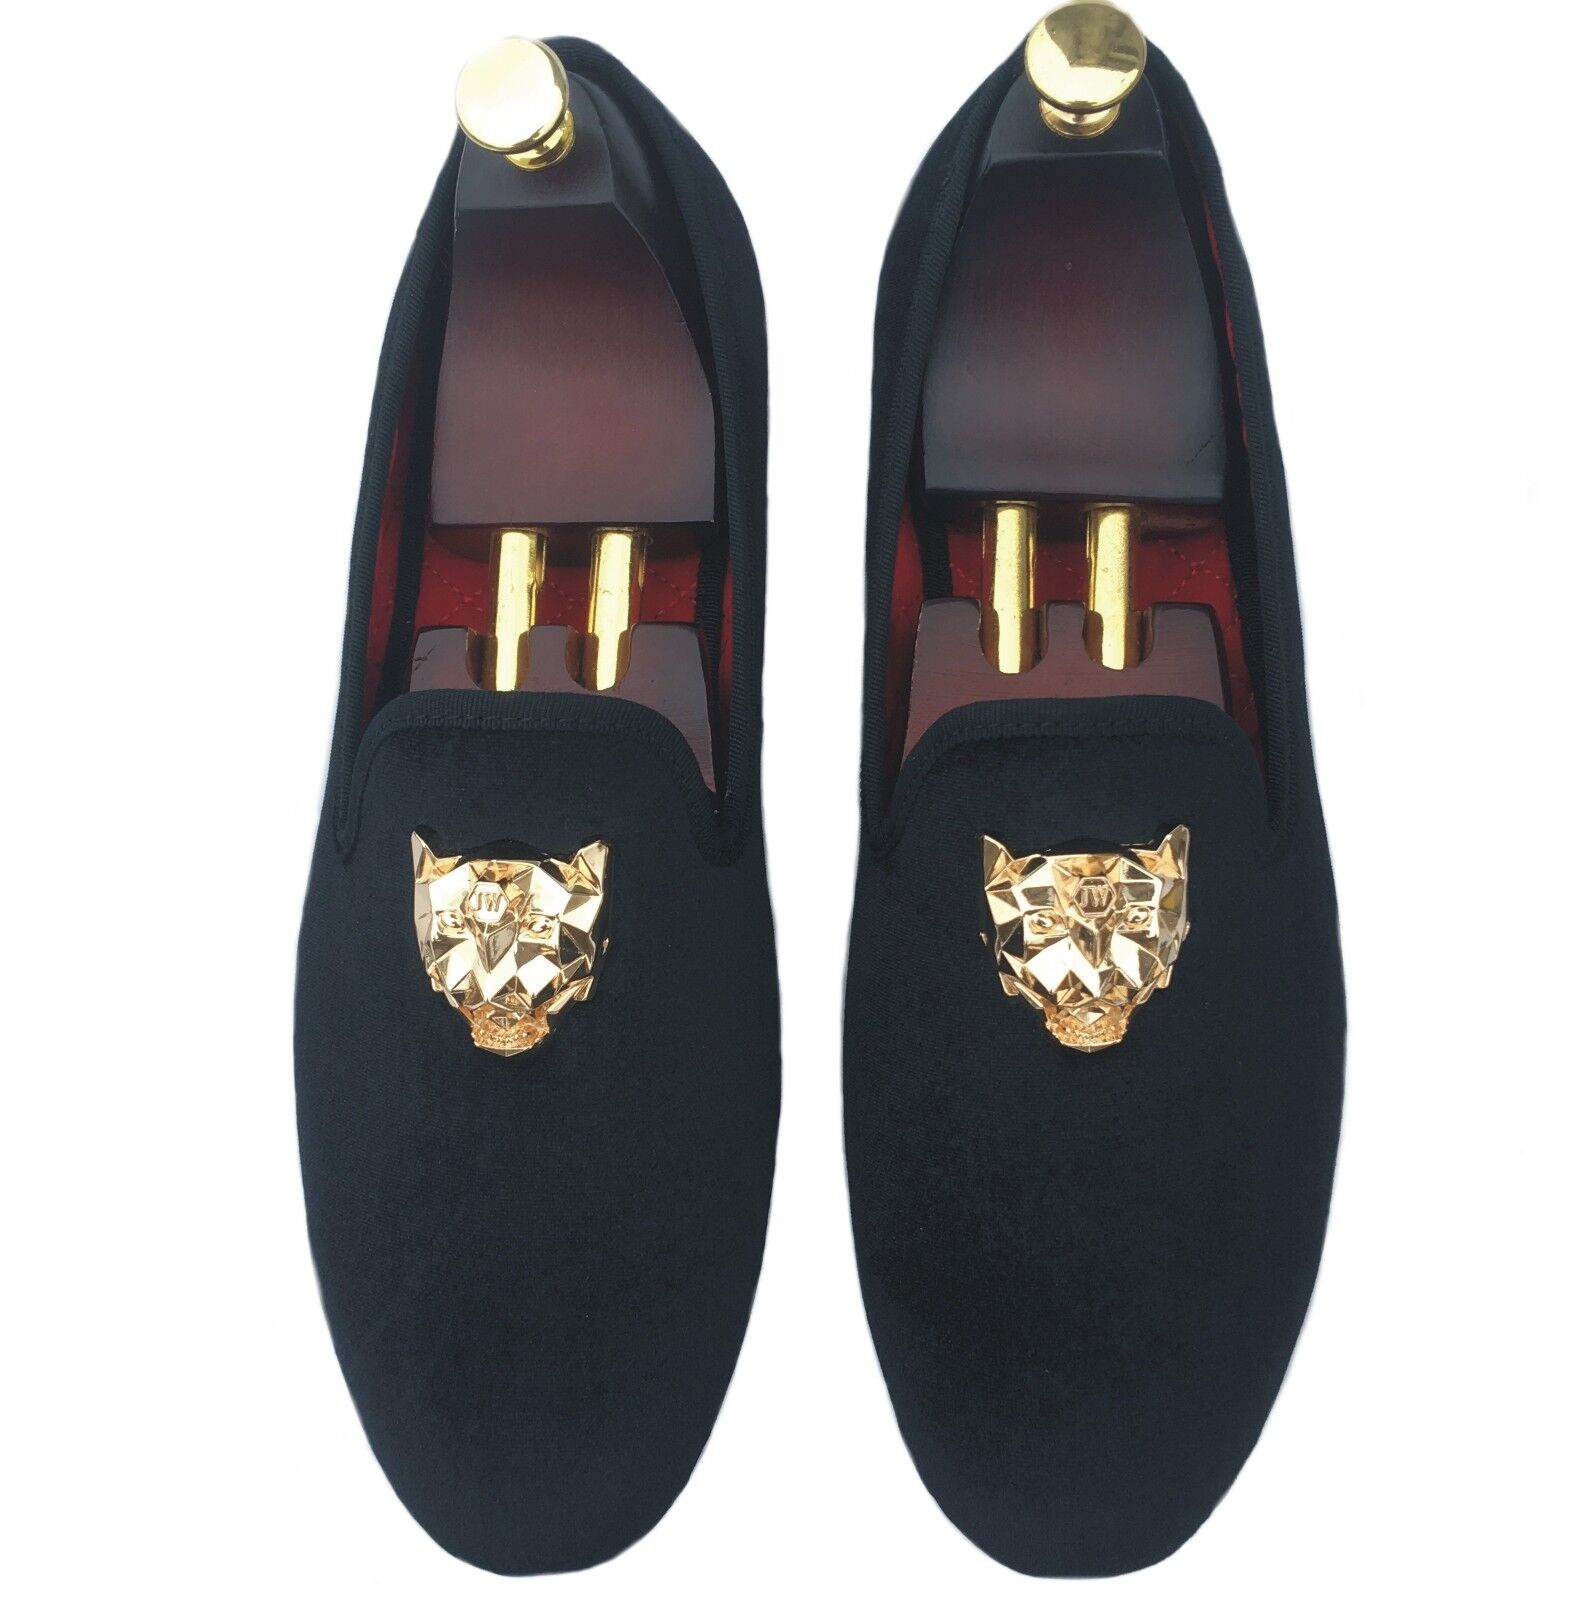 Men's Black Velvet Loafers Slip-on Dress Shoes with Gold Buckle Slippers Flats